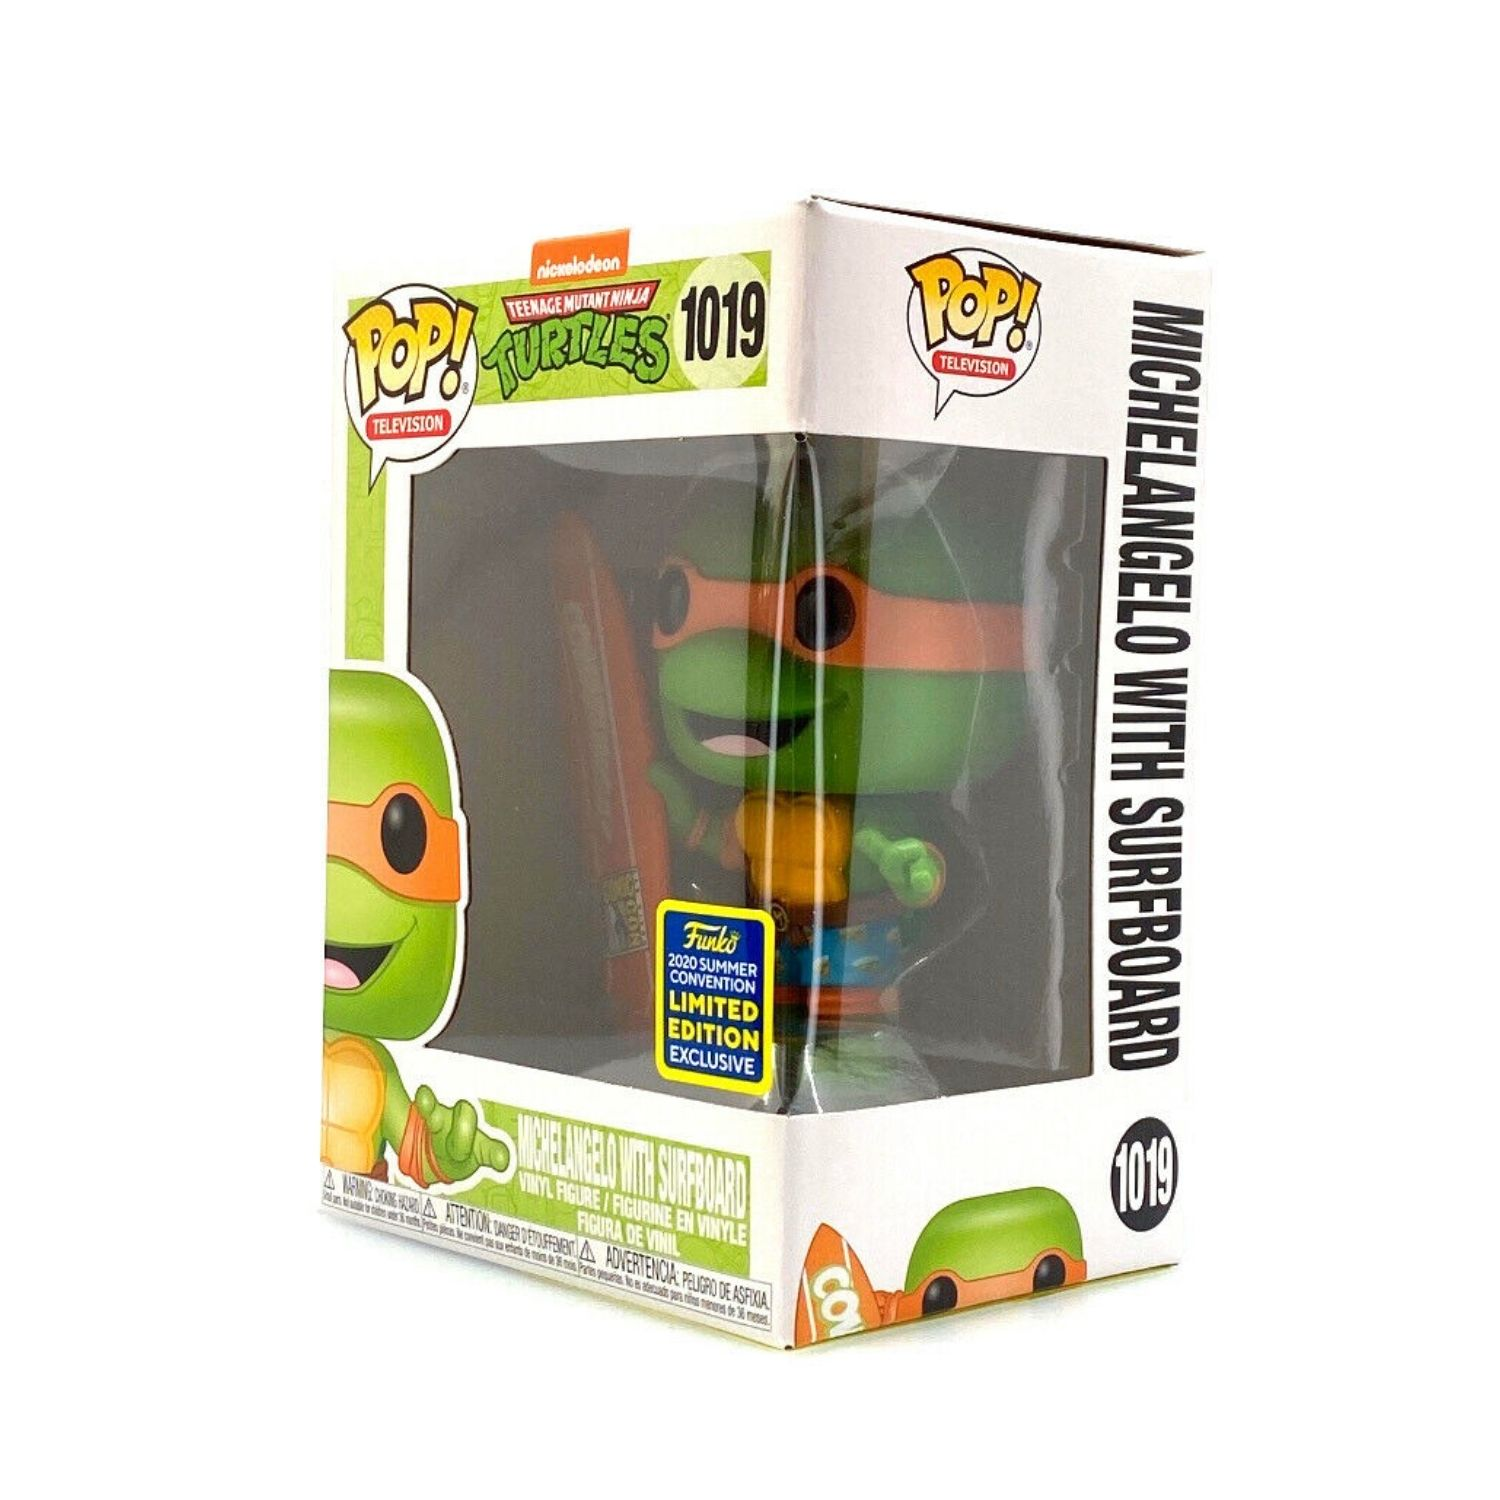 Funko Pop TMNT Michelangelo With Surfboard #1019 Summer Convention Limited Edition  - Game Land Brinquedos